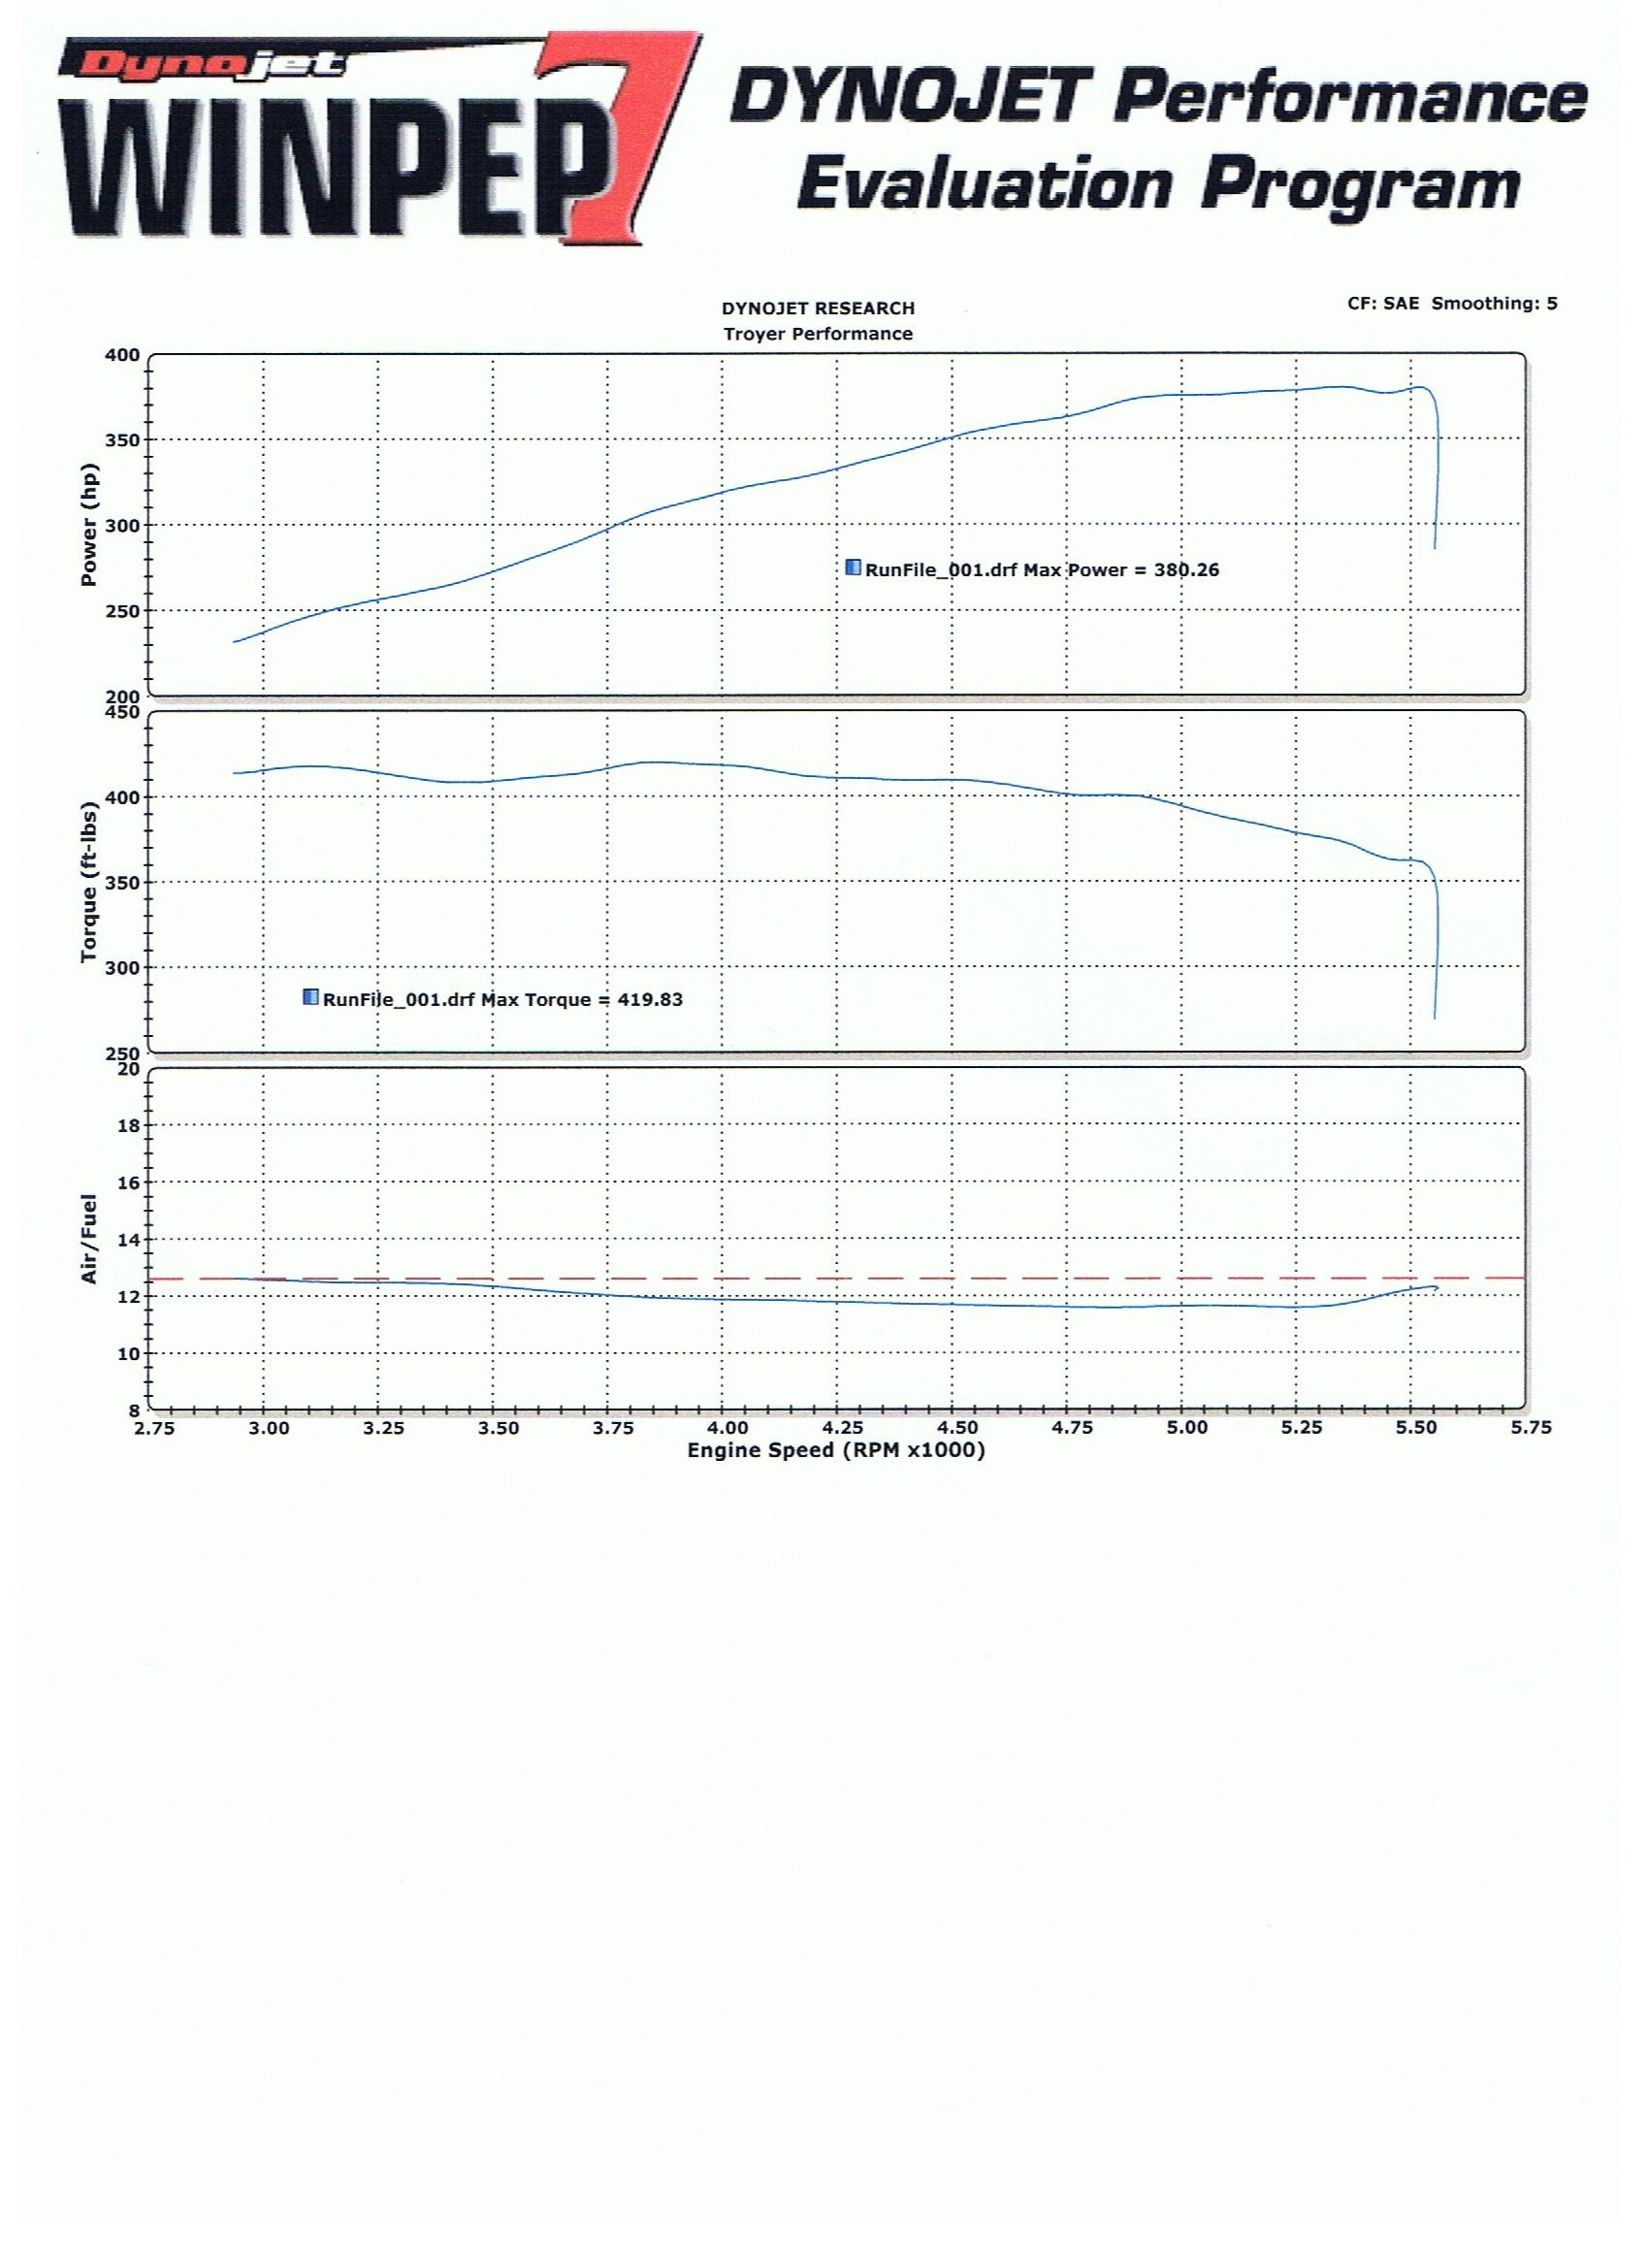 2008 Ford F150 XLT Supercab Dyno Results Graph